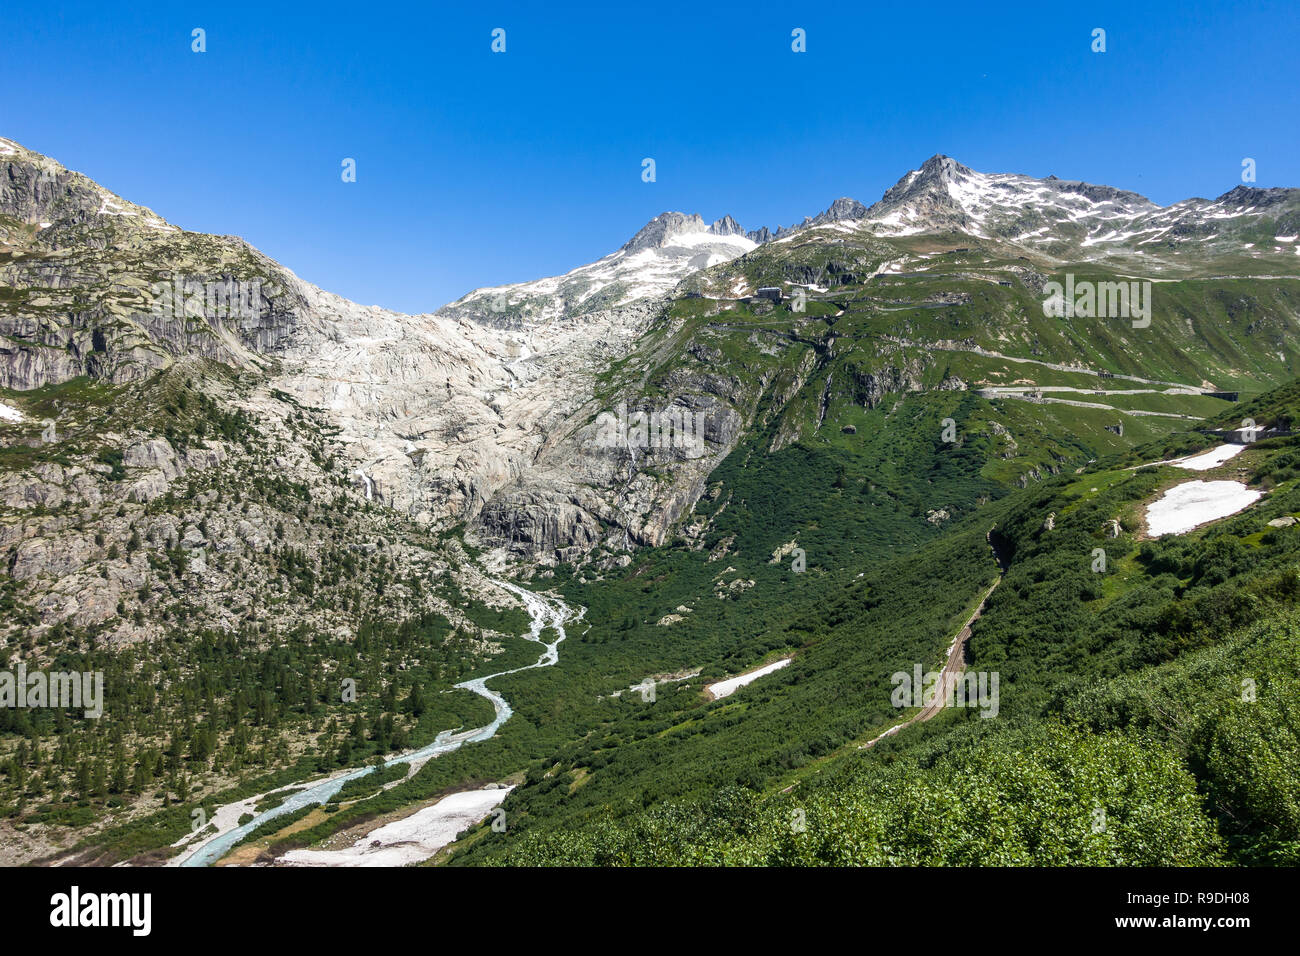 Alpine landscape with the source of Rhone river on the left and the road to Furka Pass on the right, Valais, Switzerland Stock Photo